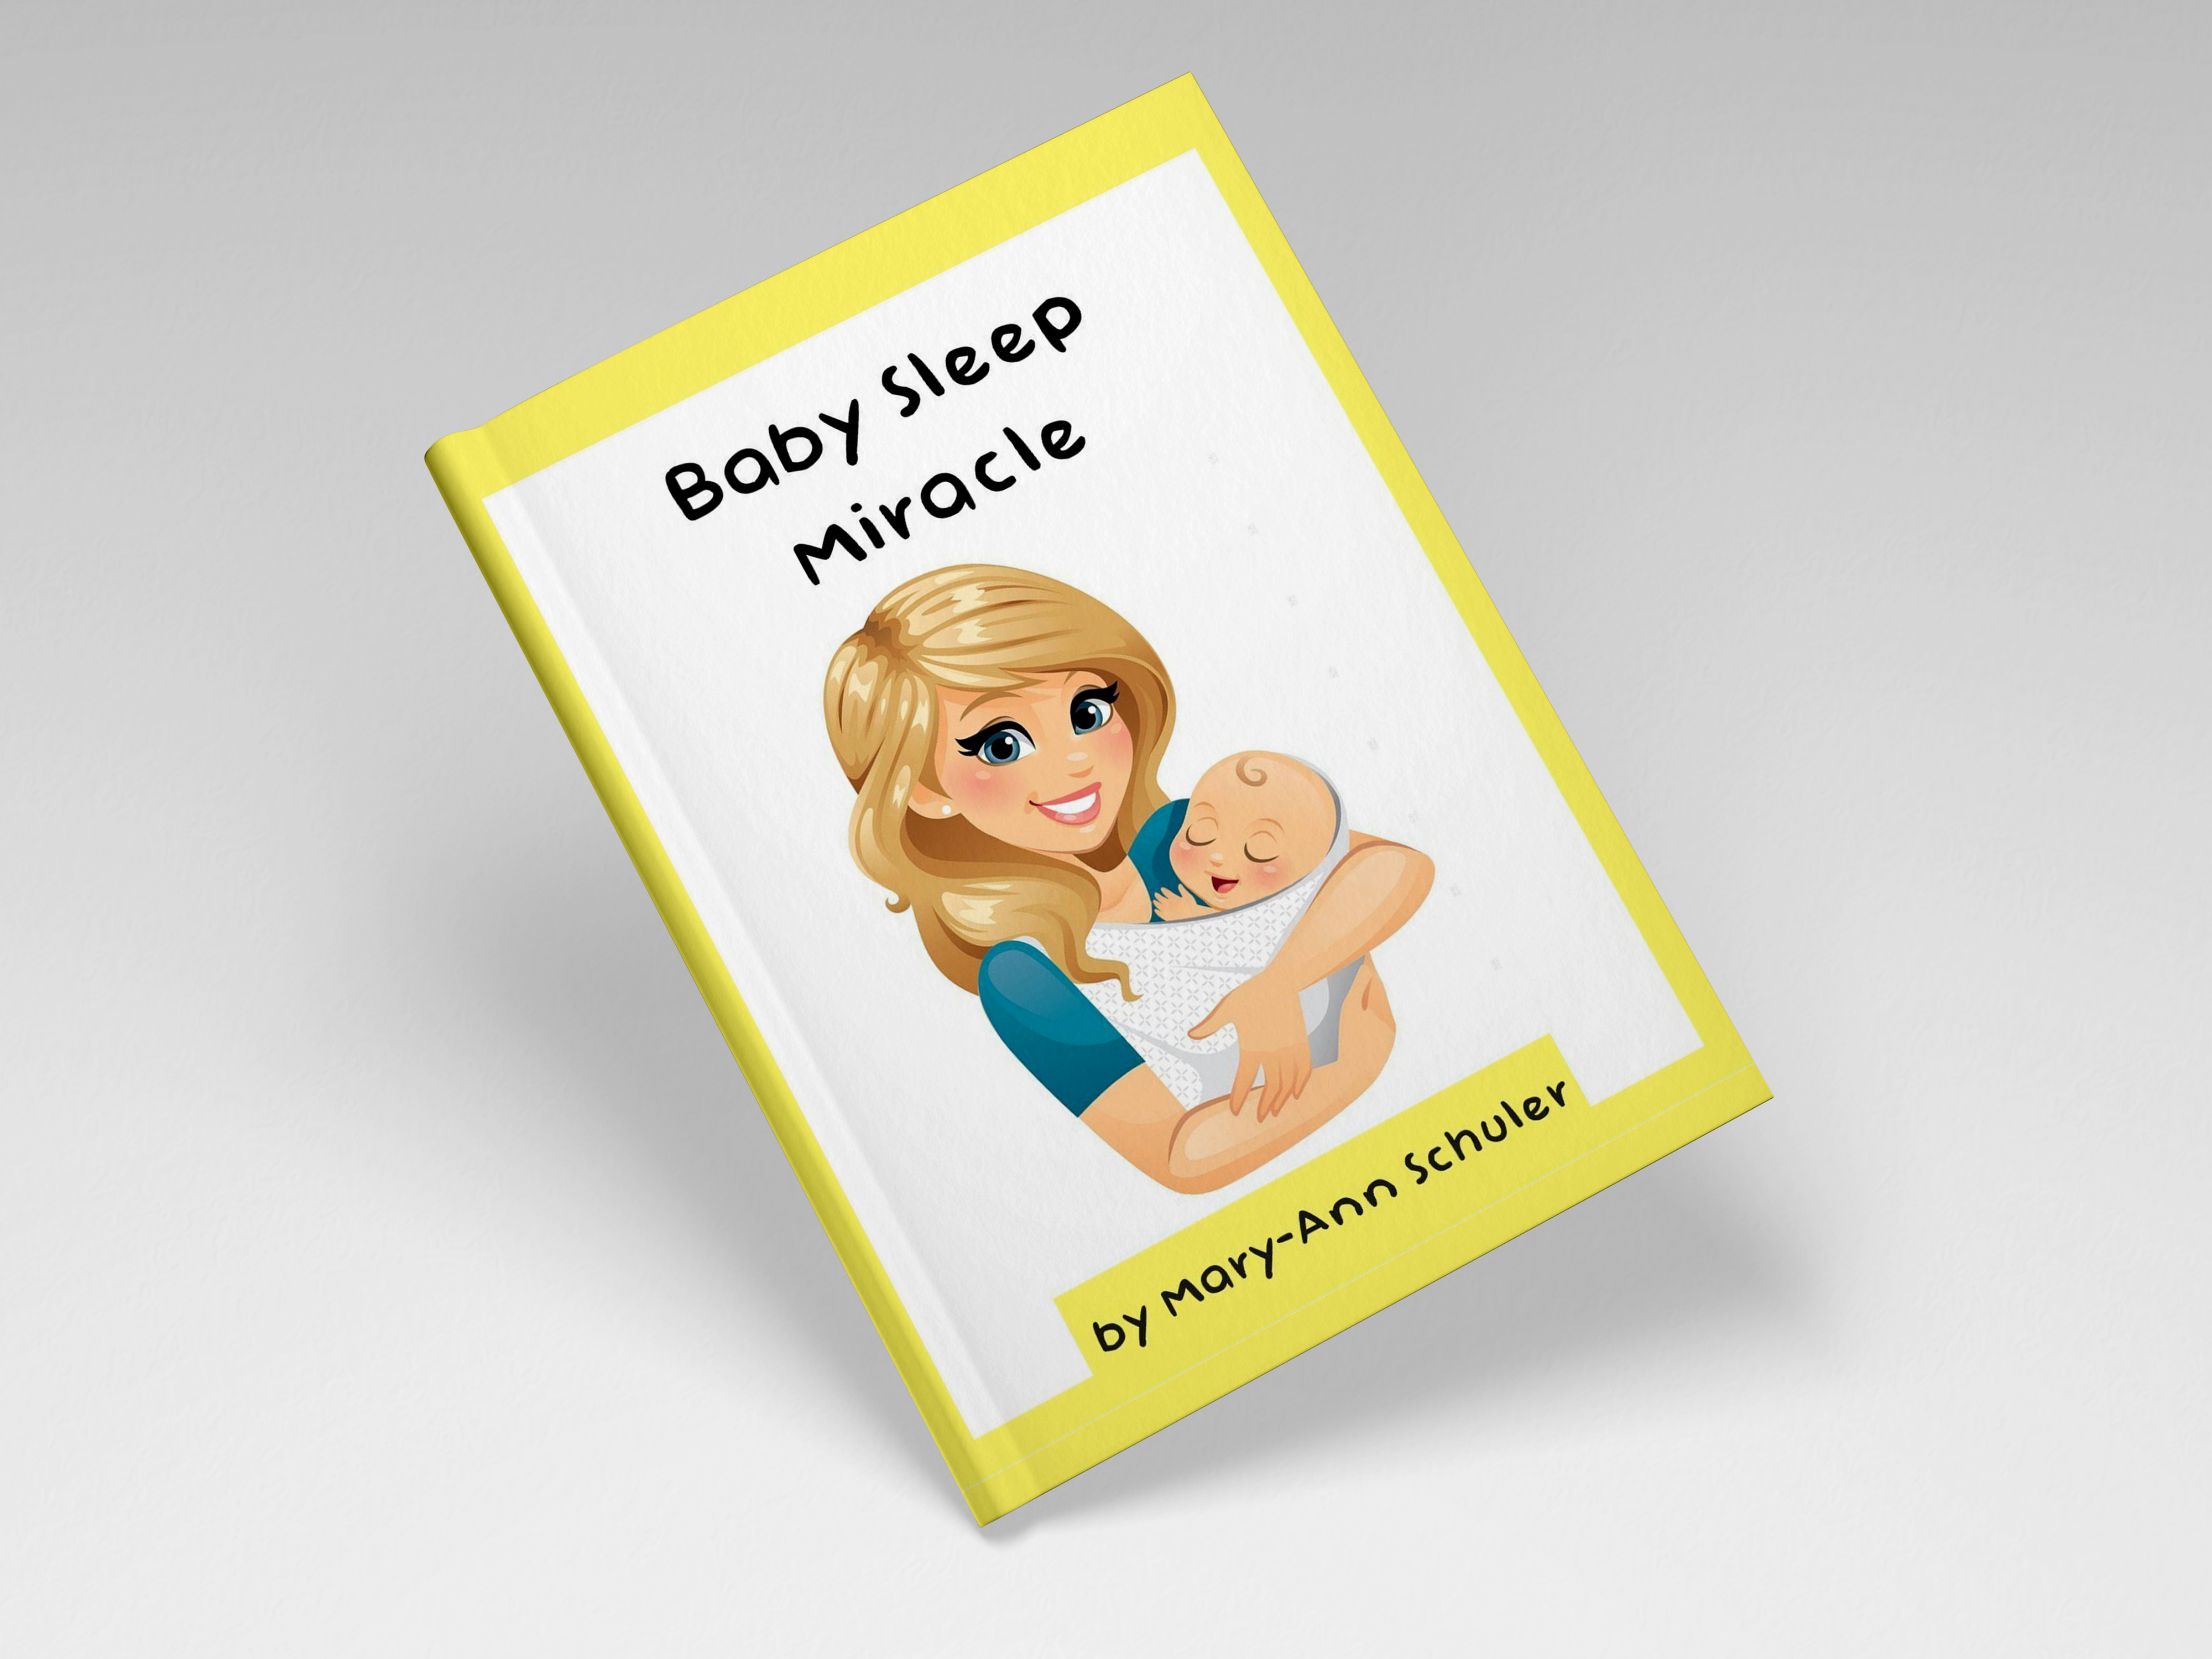 Baby Sleep Miracle Review 2020 | Mary Ann's Baby Sleep Training Book!